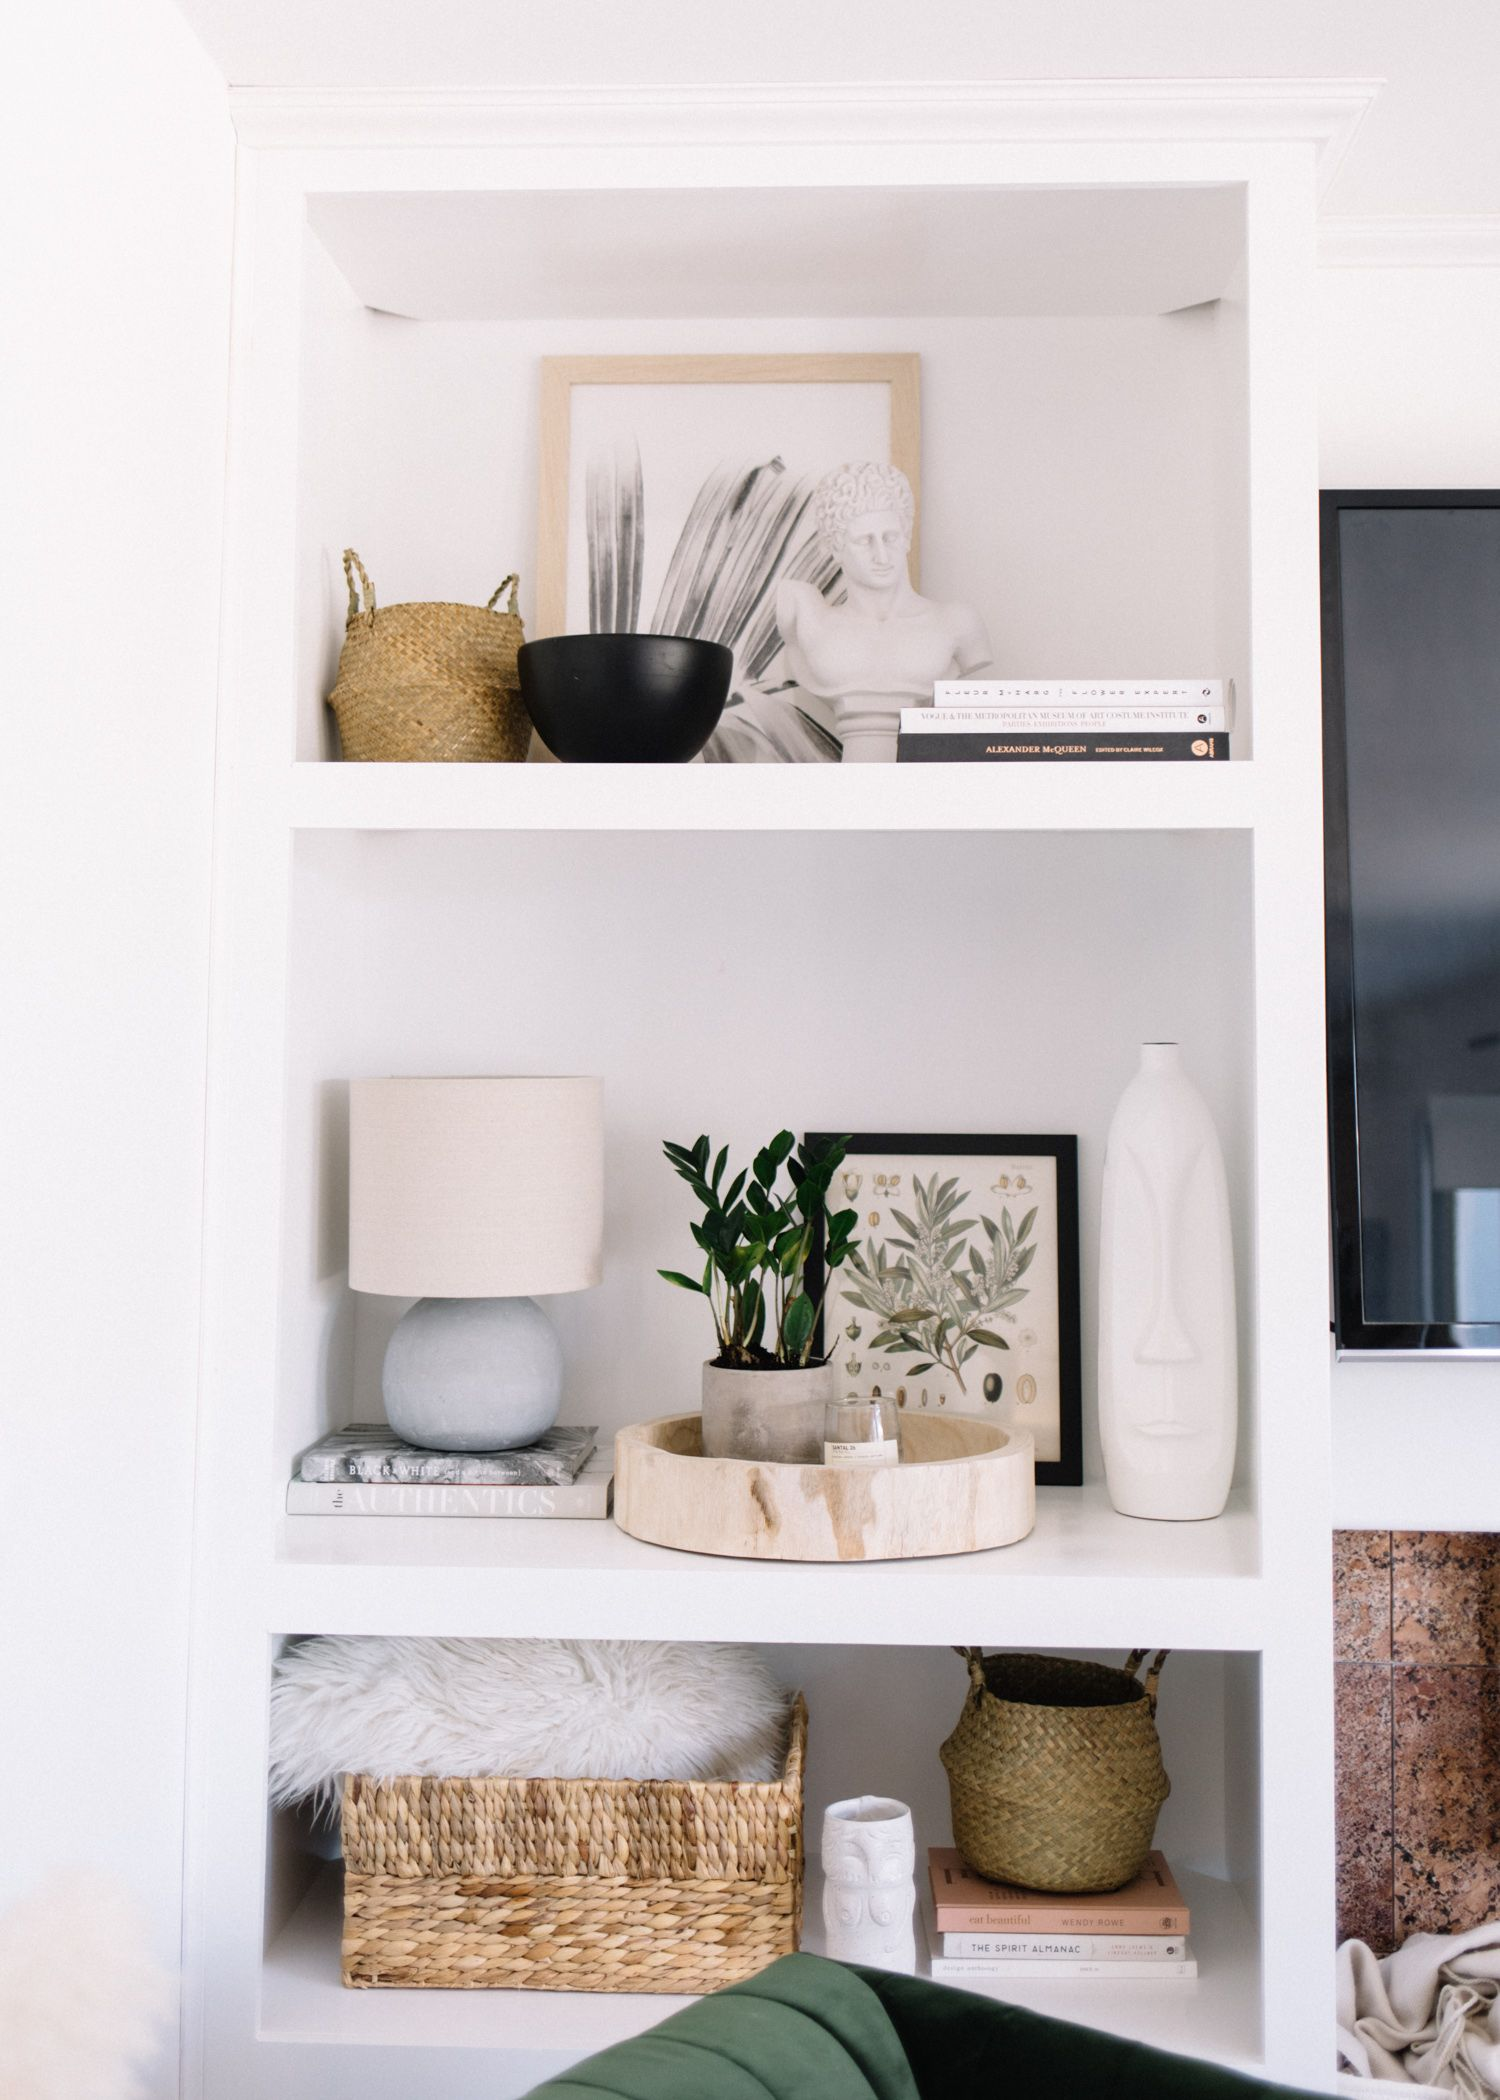 Pin On Home Decor Style #shelf #decor #living #room